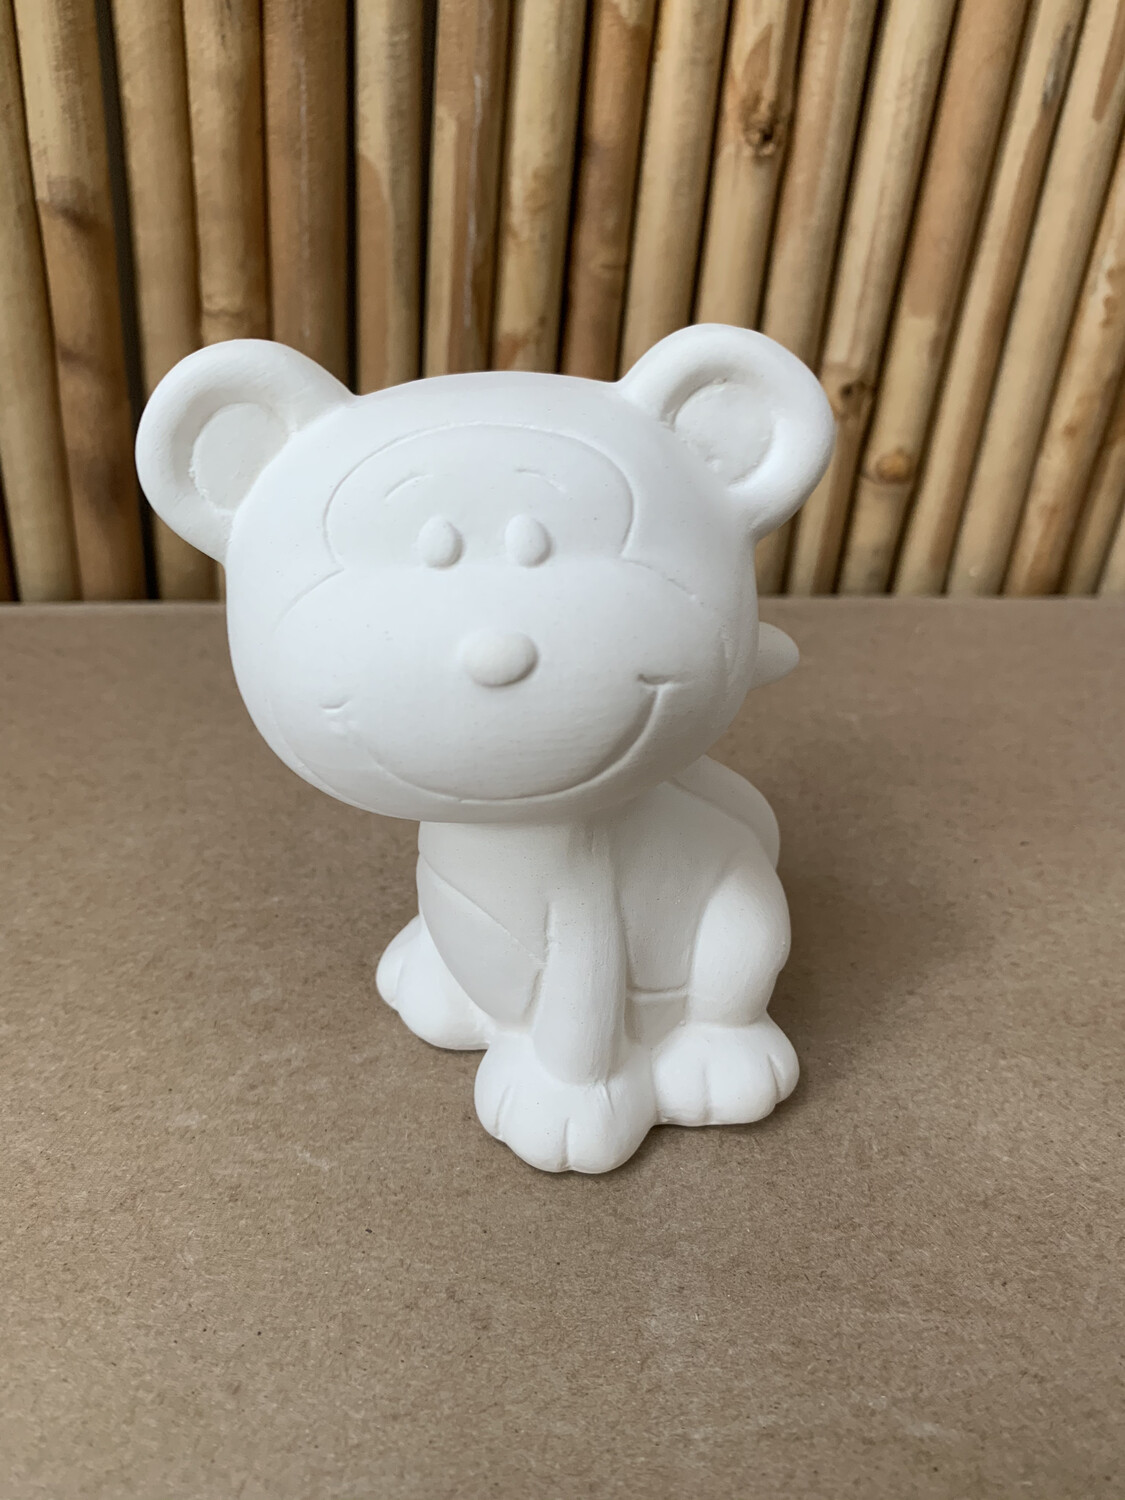 Paint Your Own Pottery - Ceramic   Monkey Figurine Painting Kit